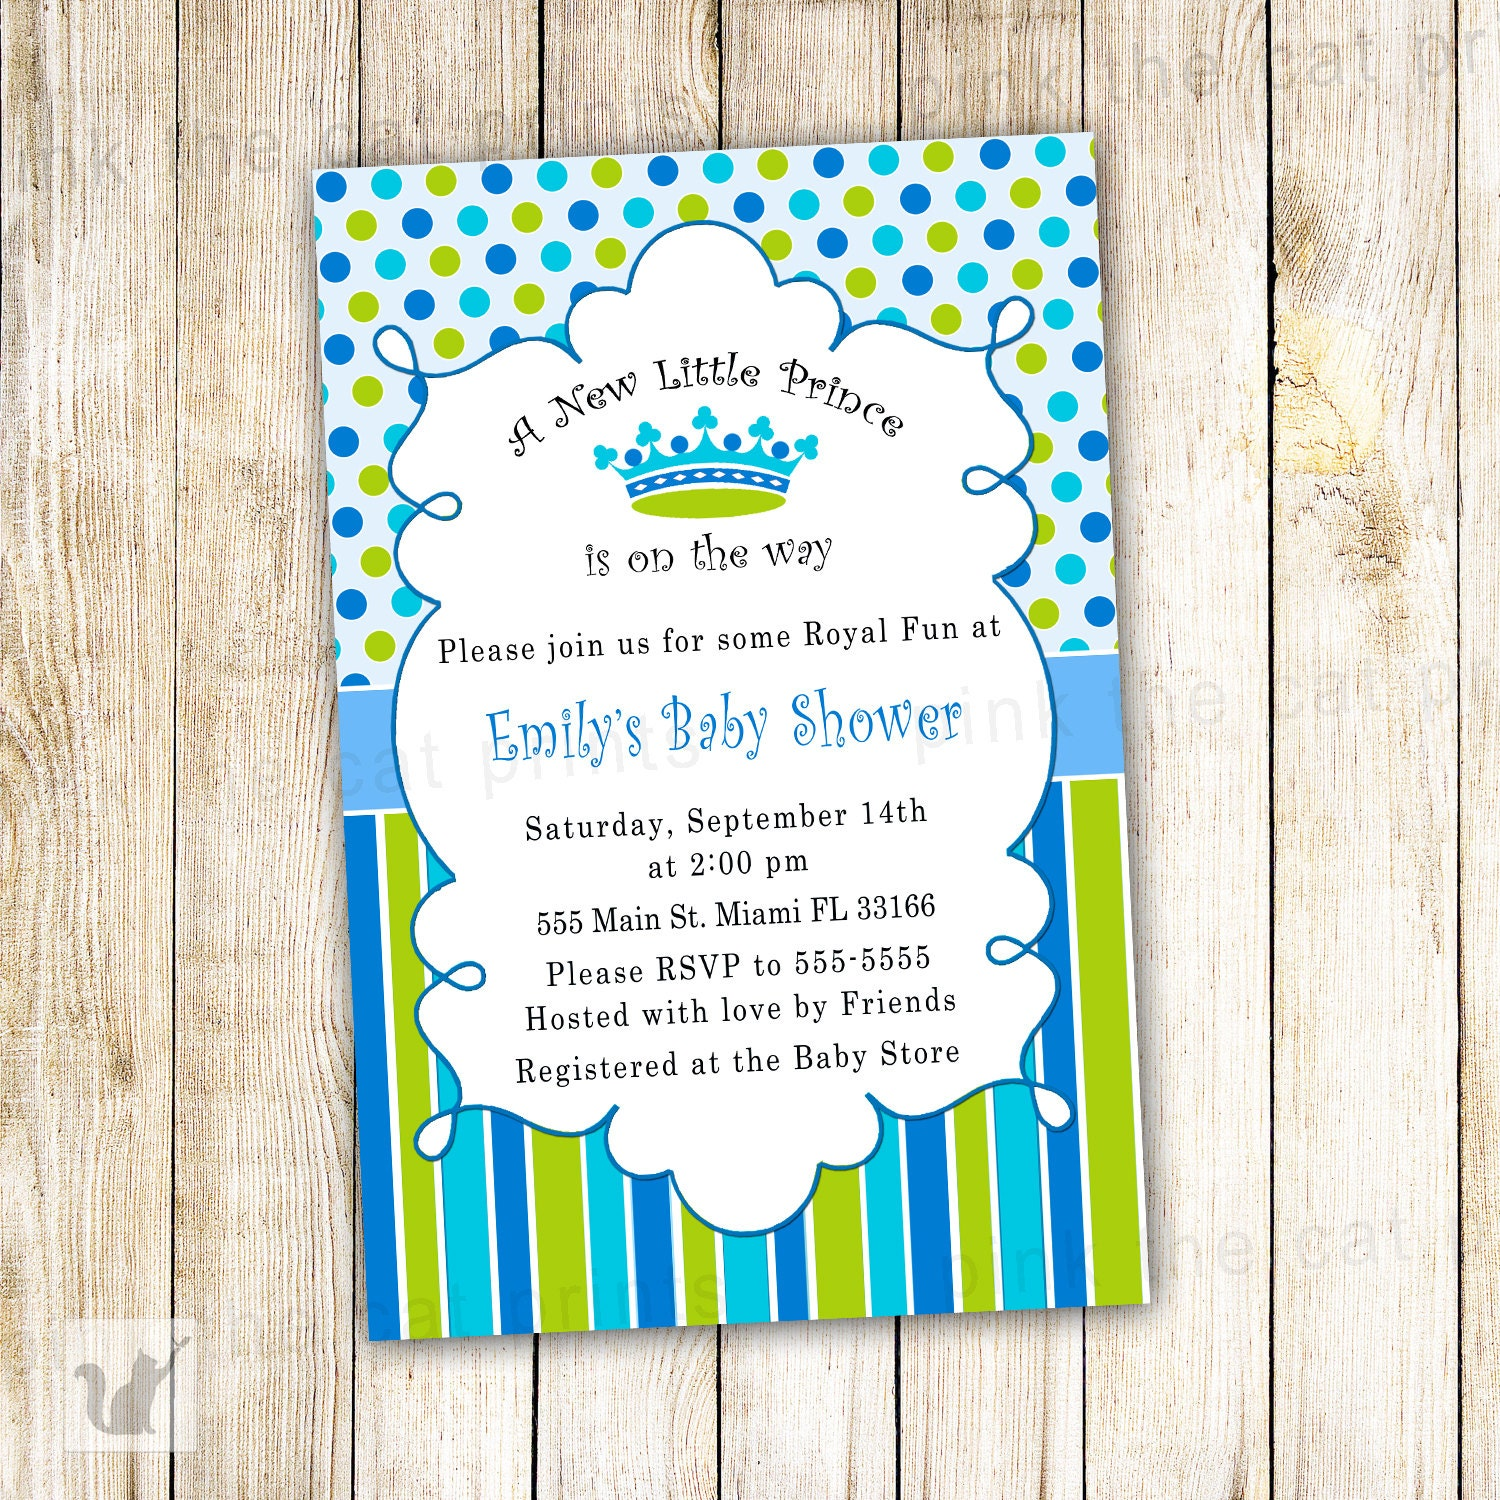 little prince invite  etsy, Baby shower